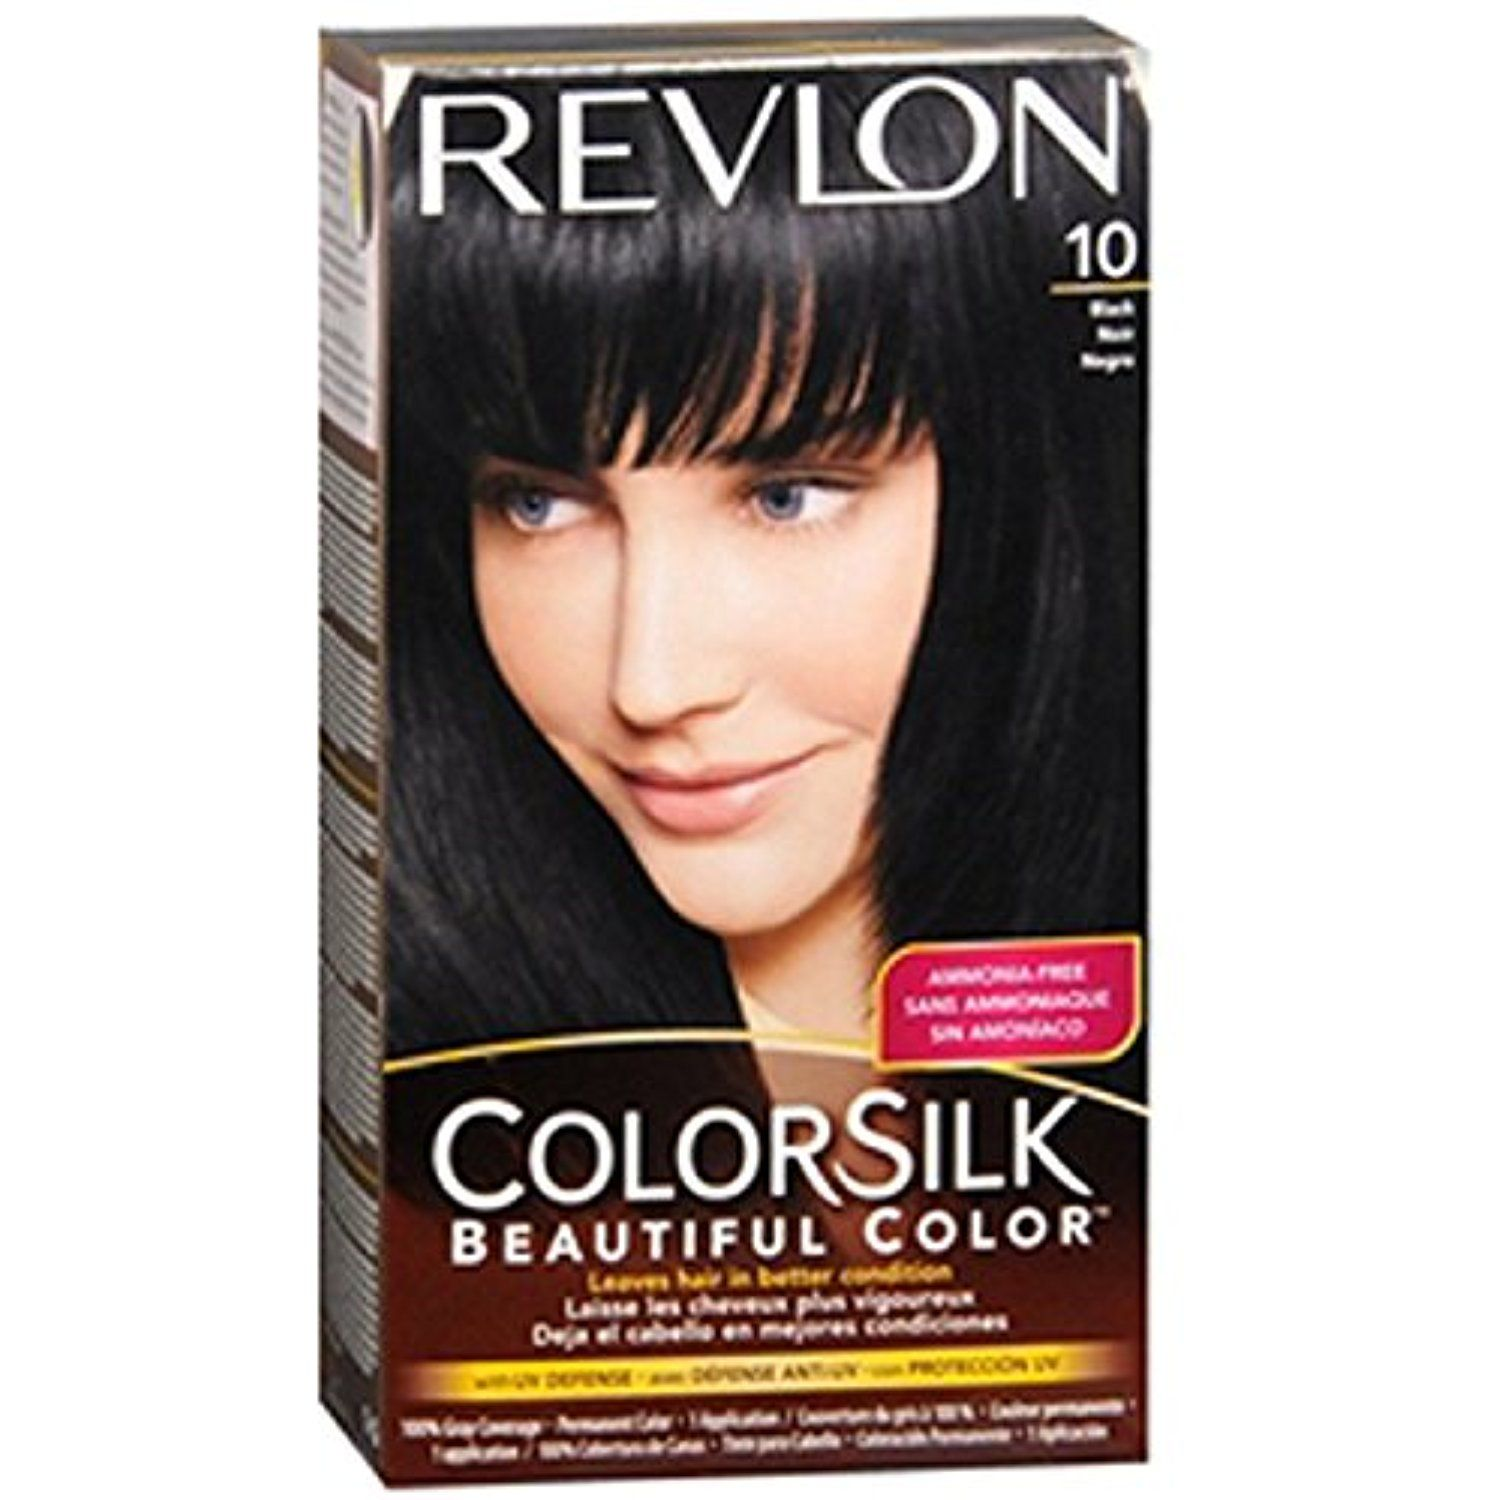 Revlon Colorsilk Beautiful Color Permanent Color Black 10 See